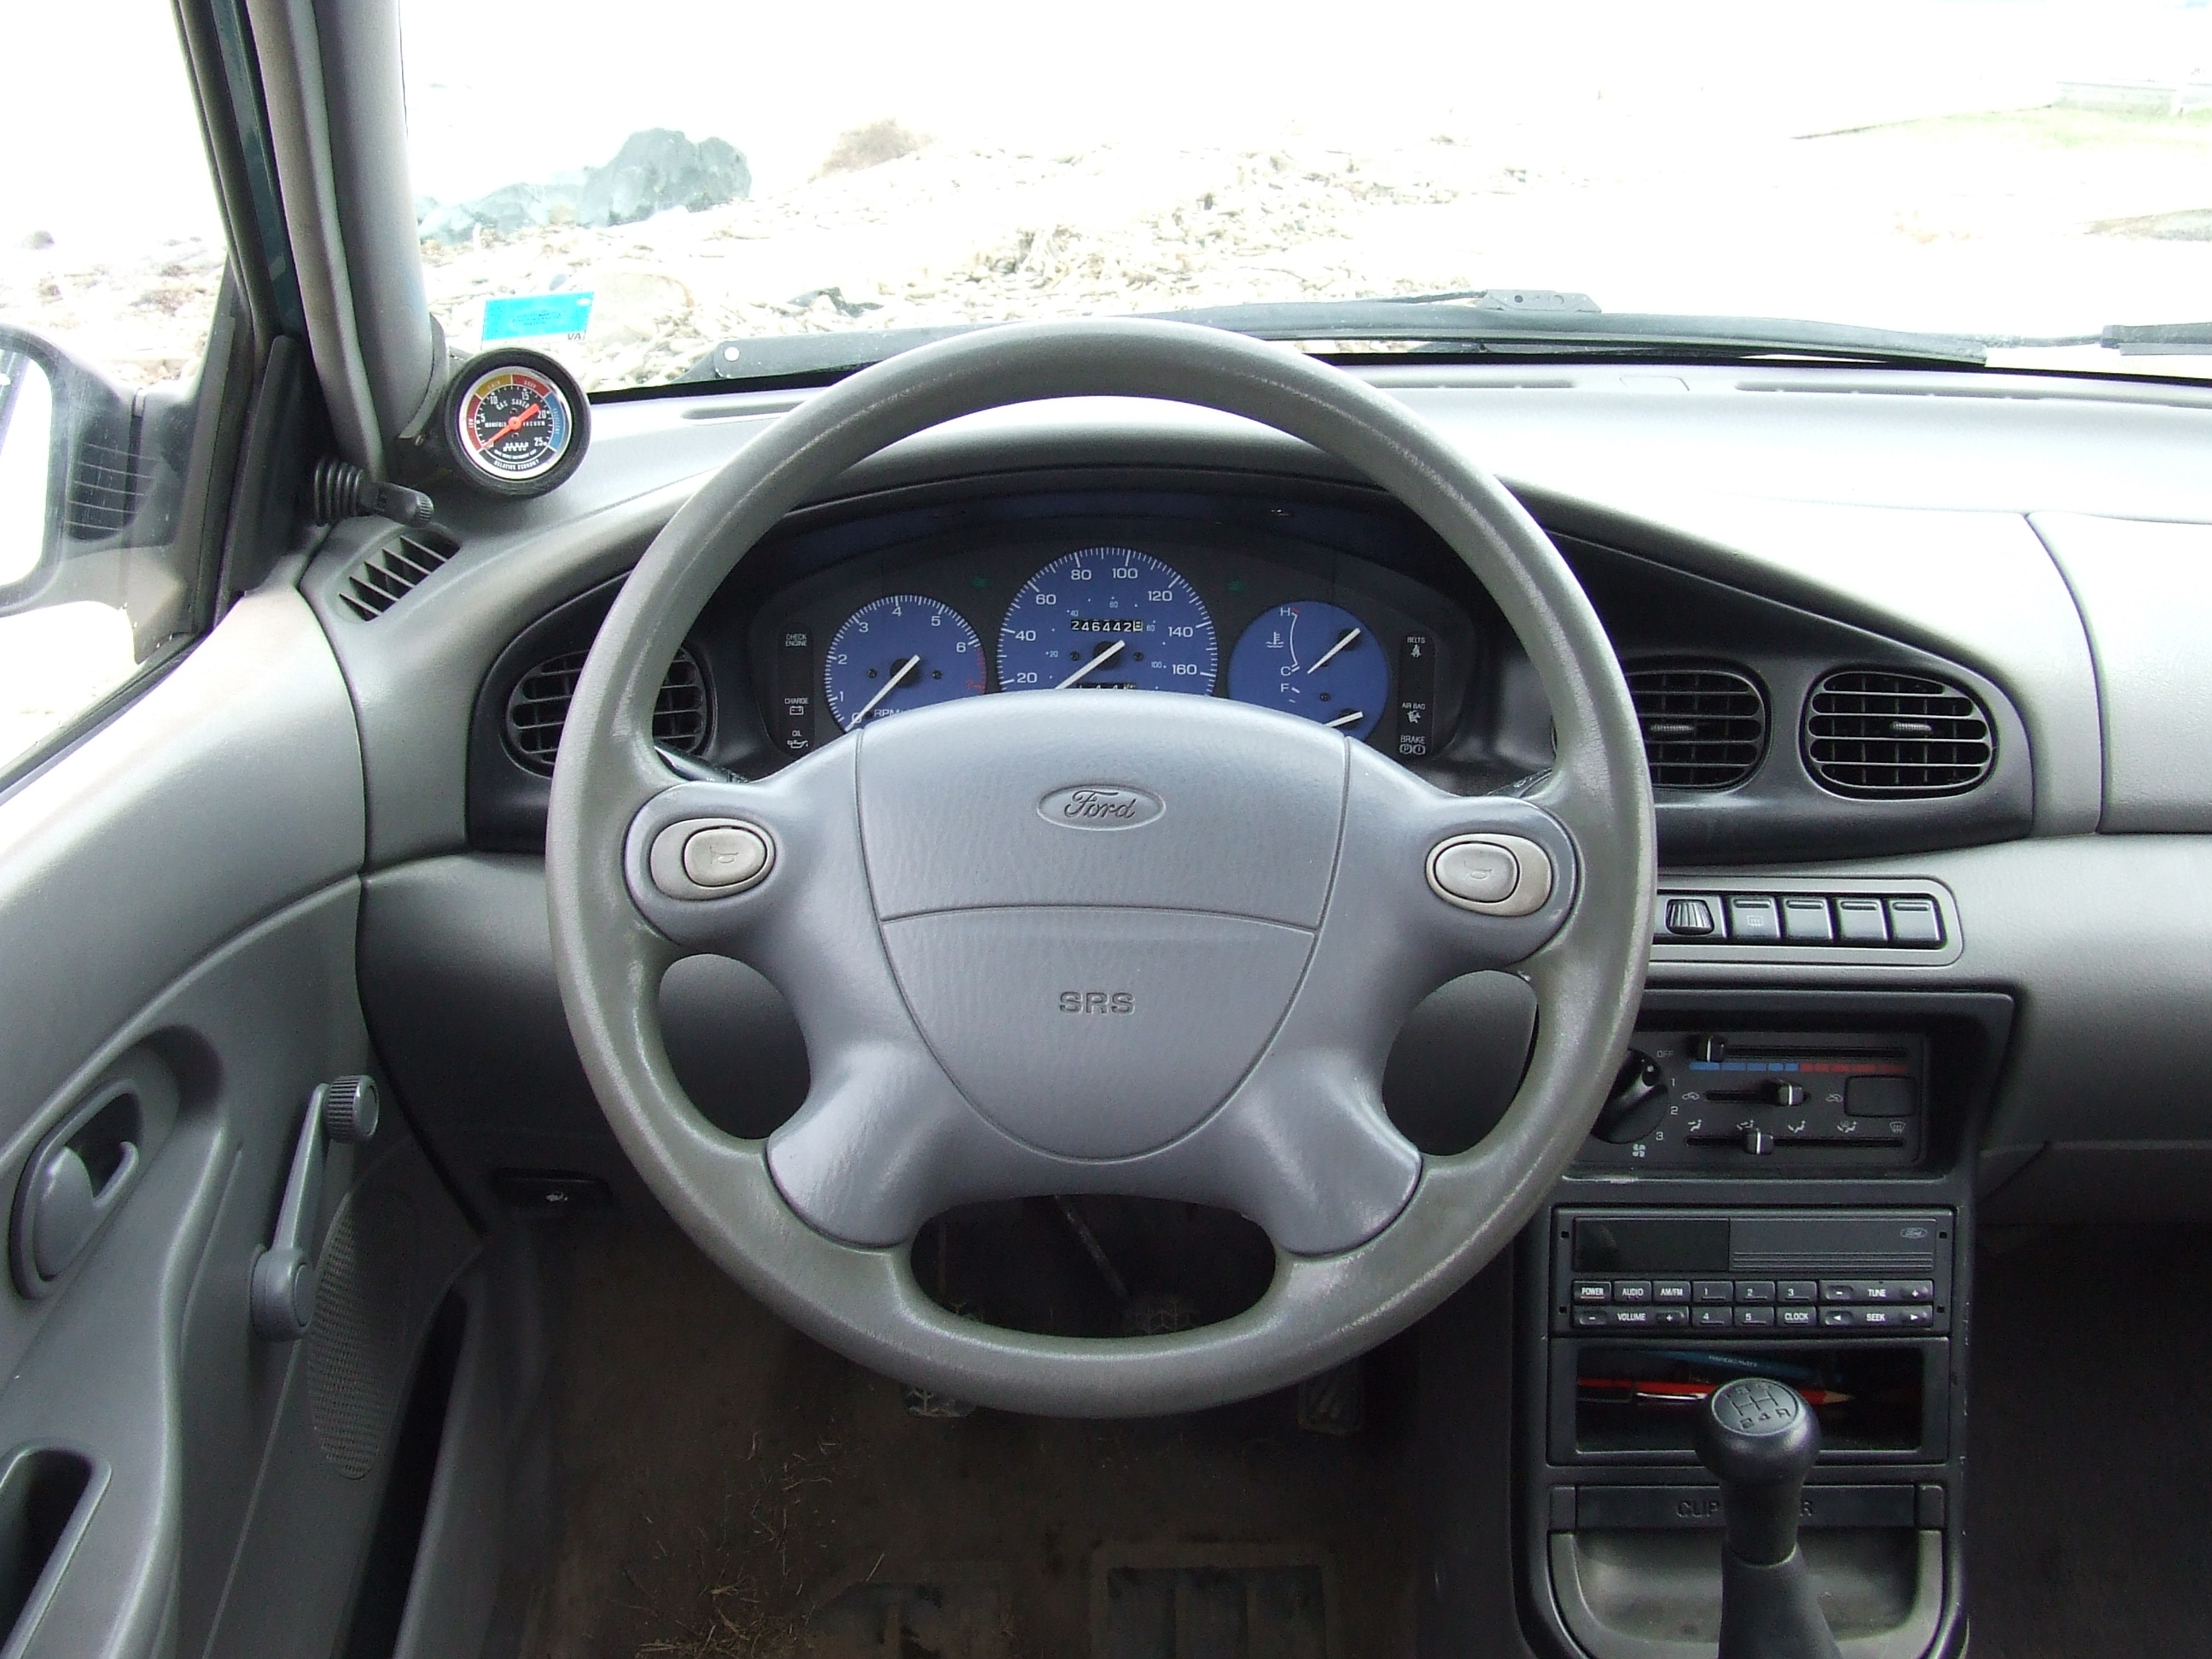 96554 1996 Ford Aspire